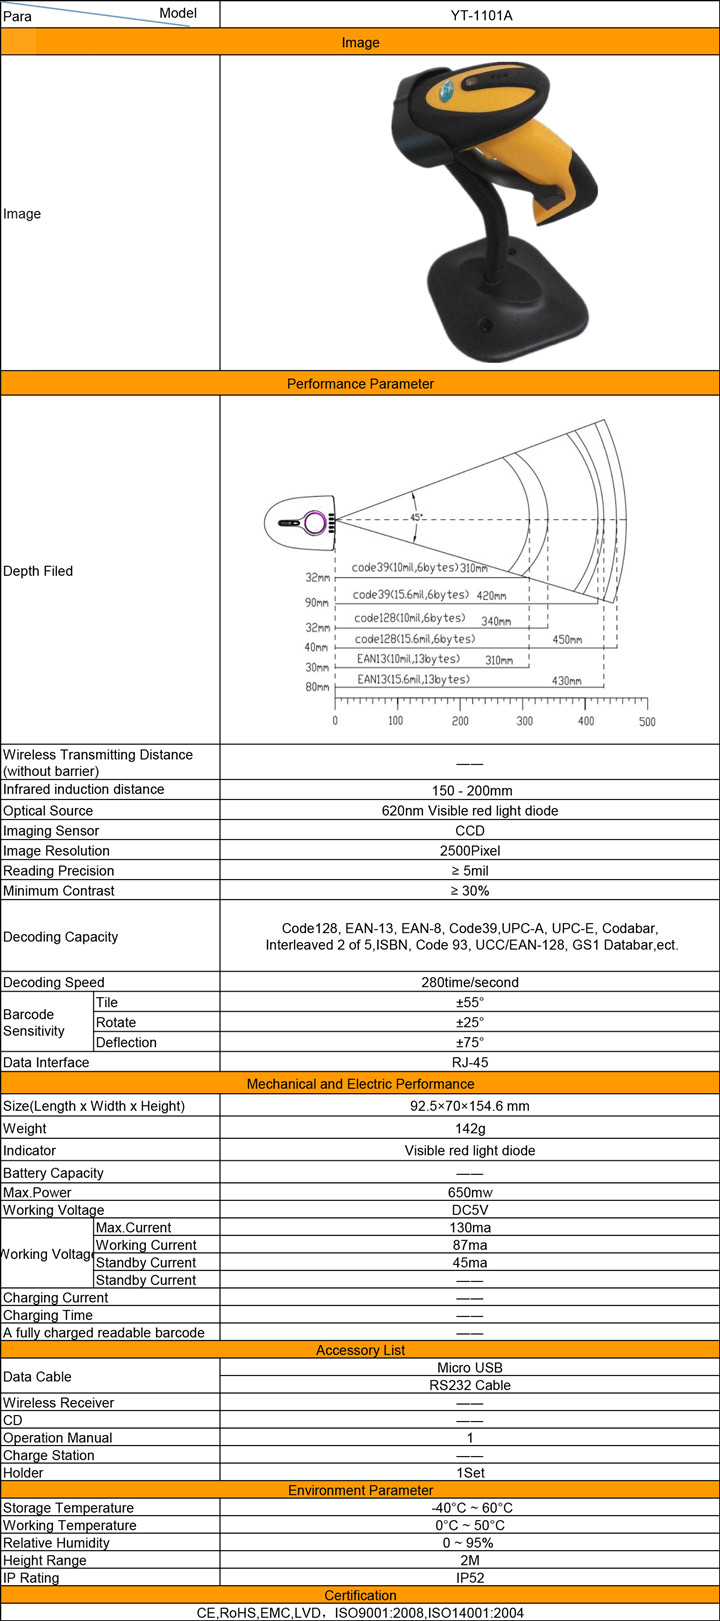 specification about YT-1101A